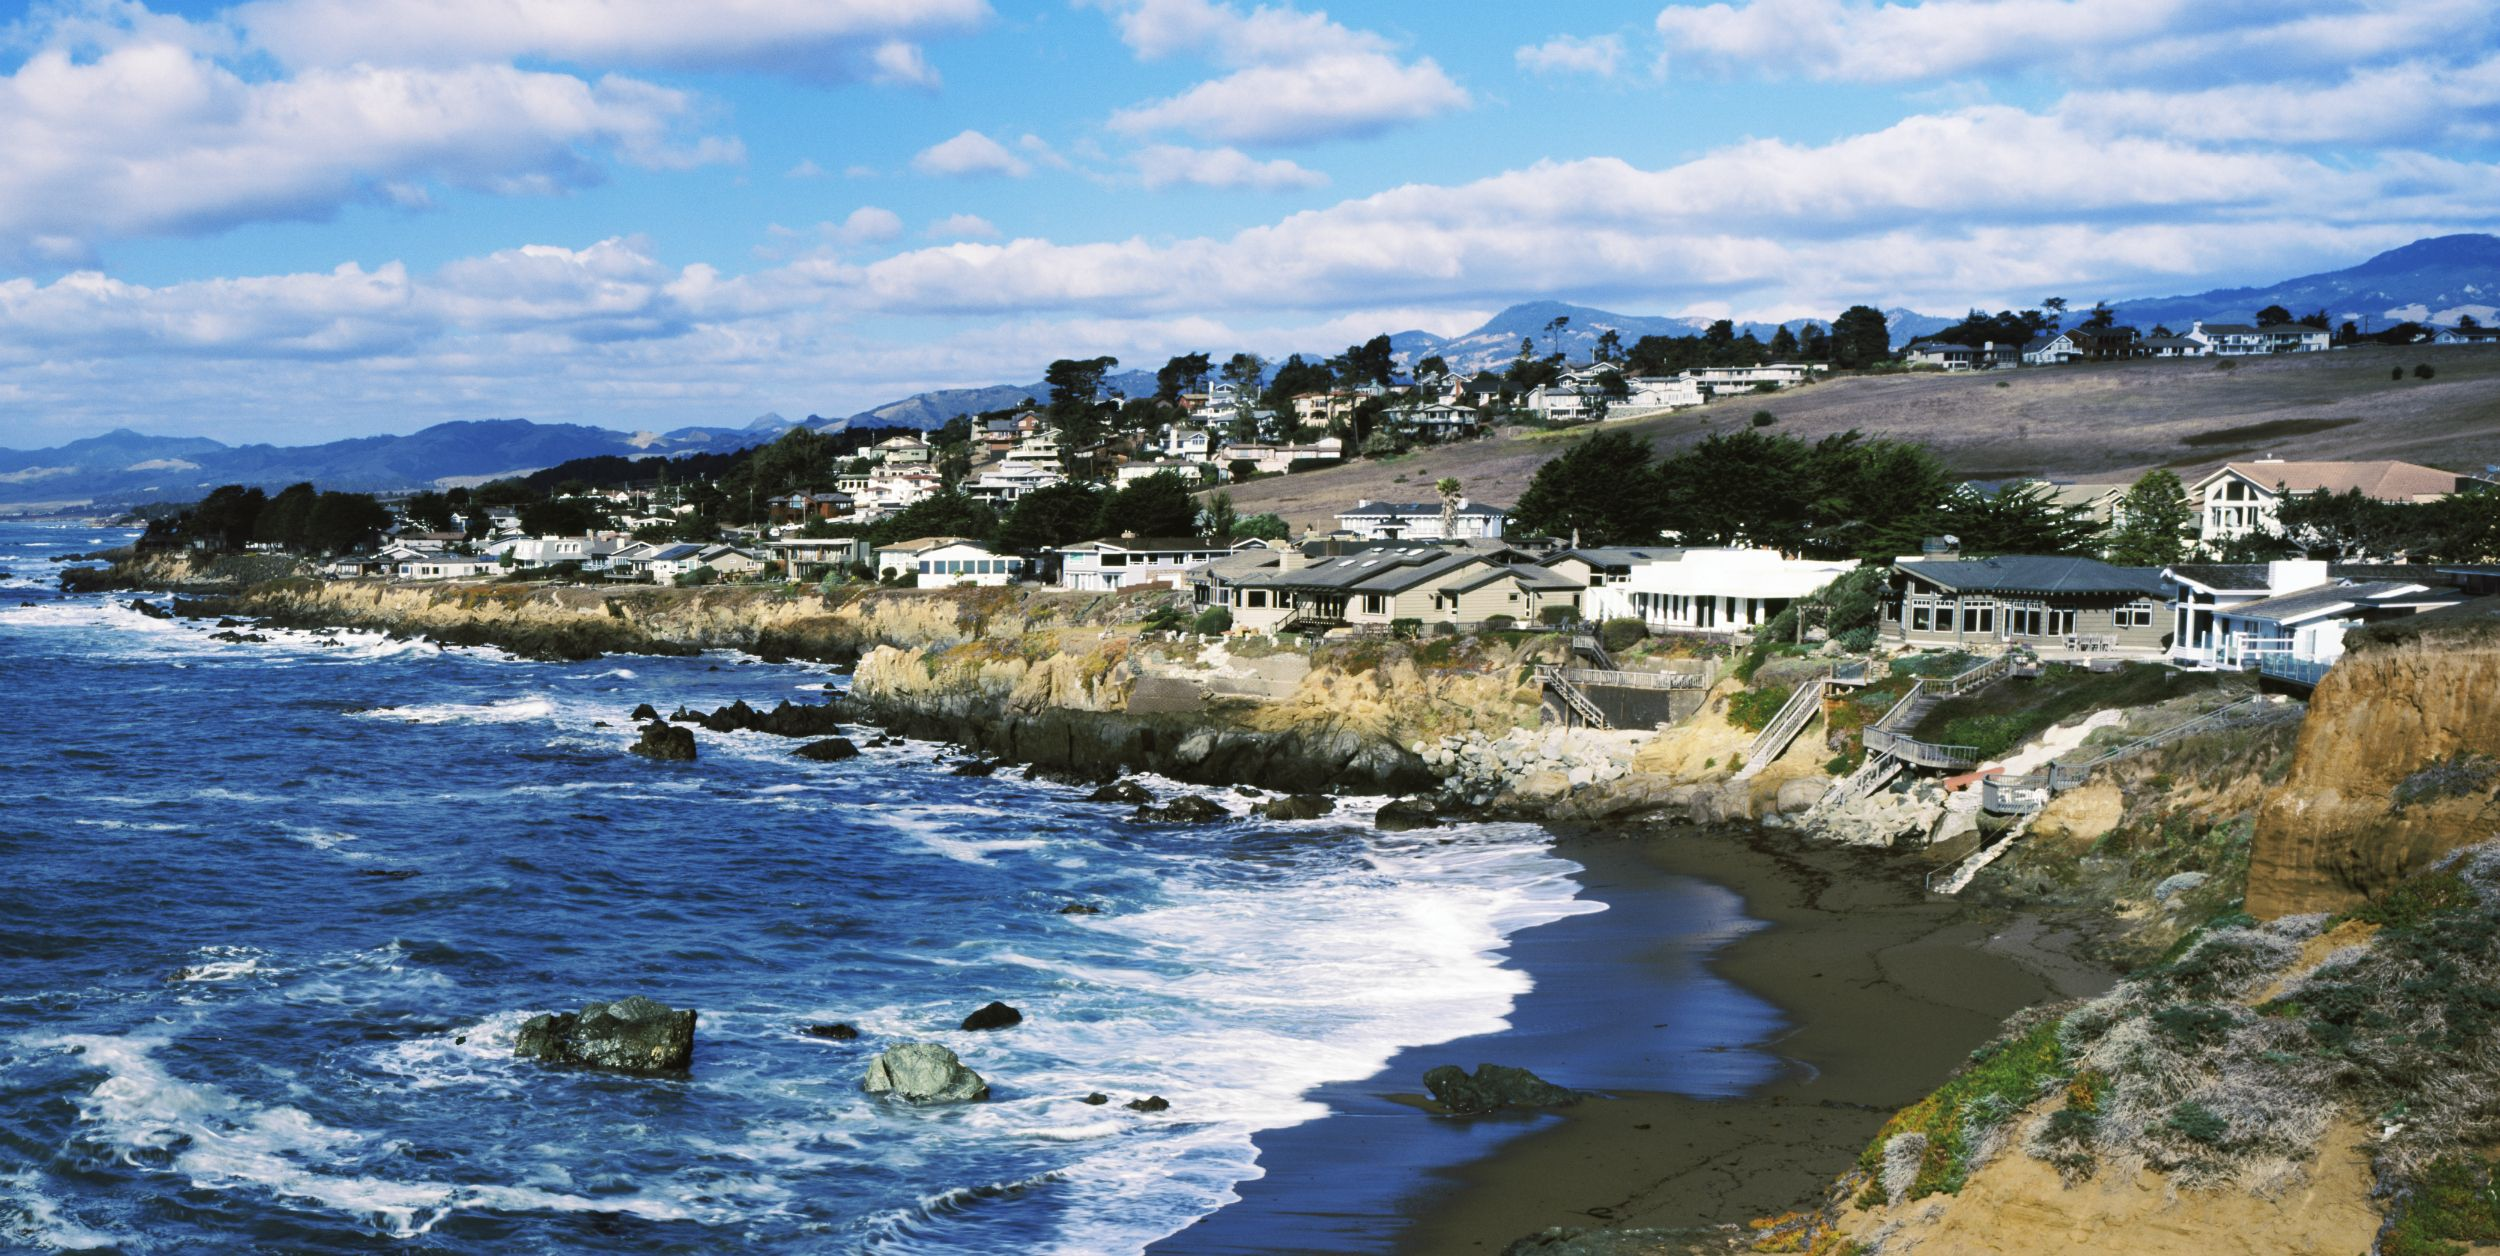 Here Are The 10 Most And Least Expensive Retirement Towns, According To Realtor.com